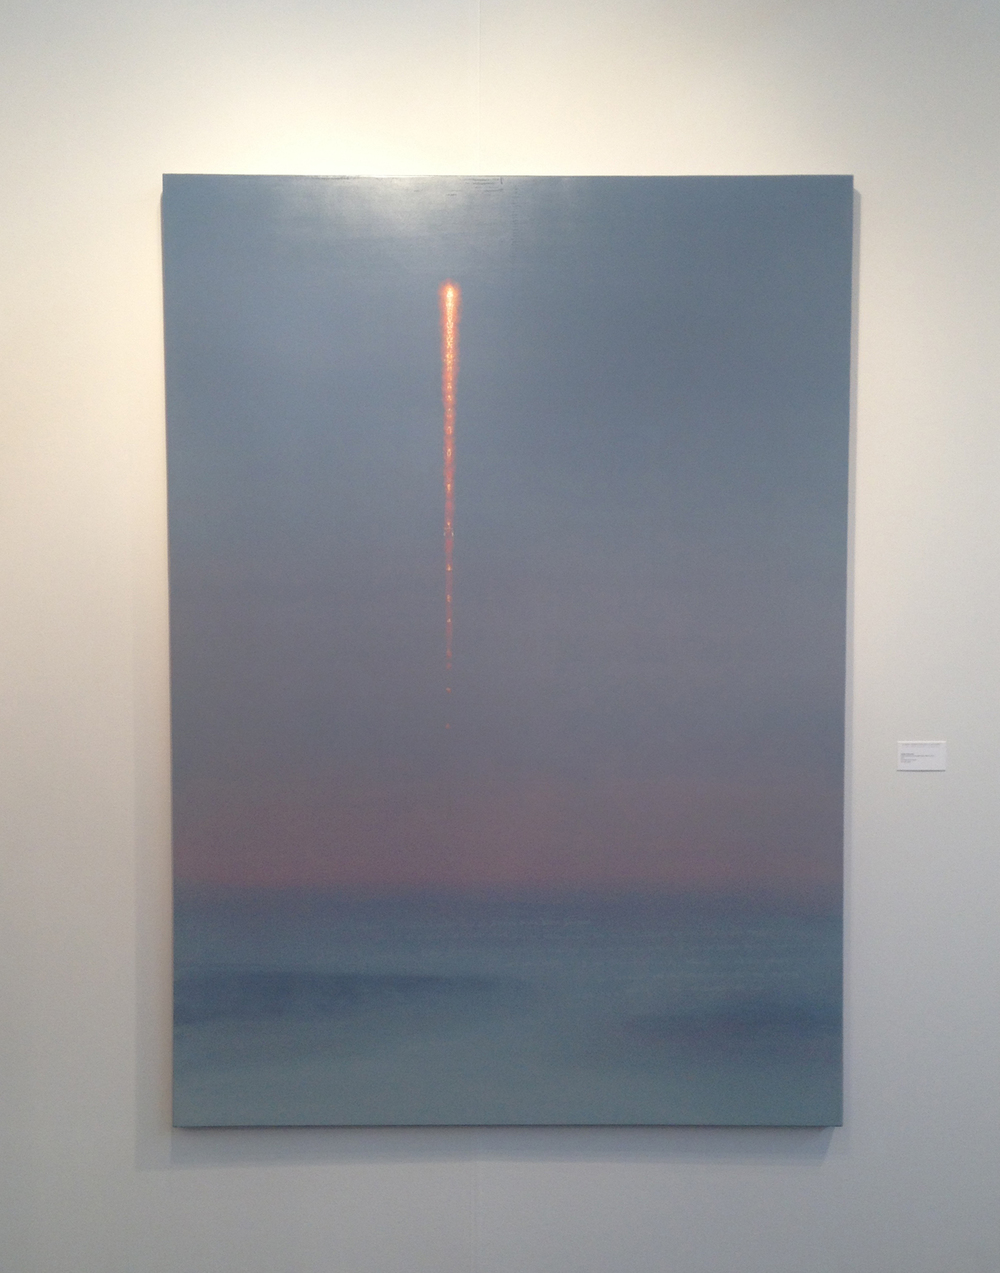 Stephen Hannock, titled Paul's Rocket at First Light